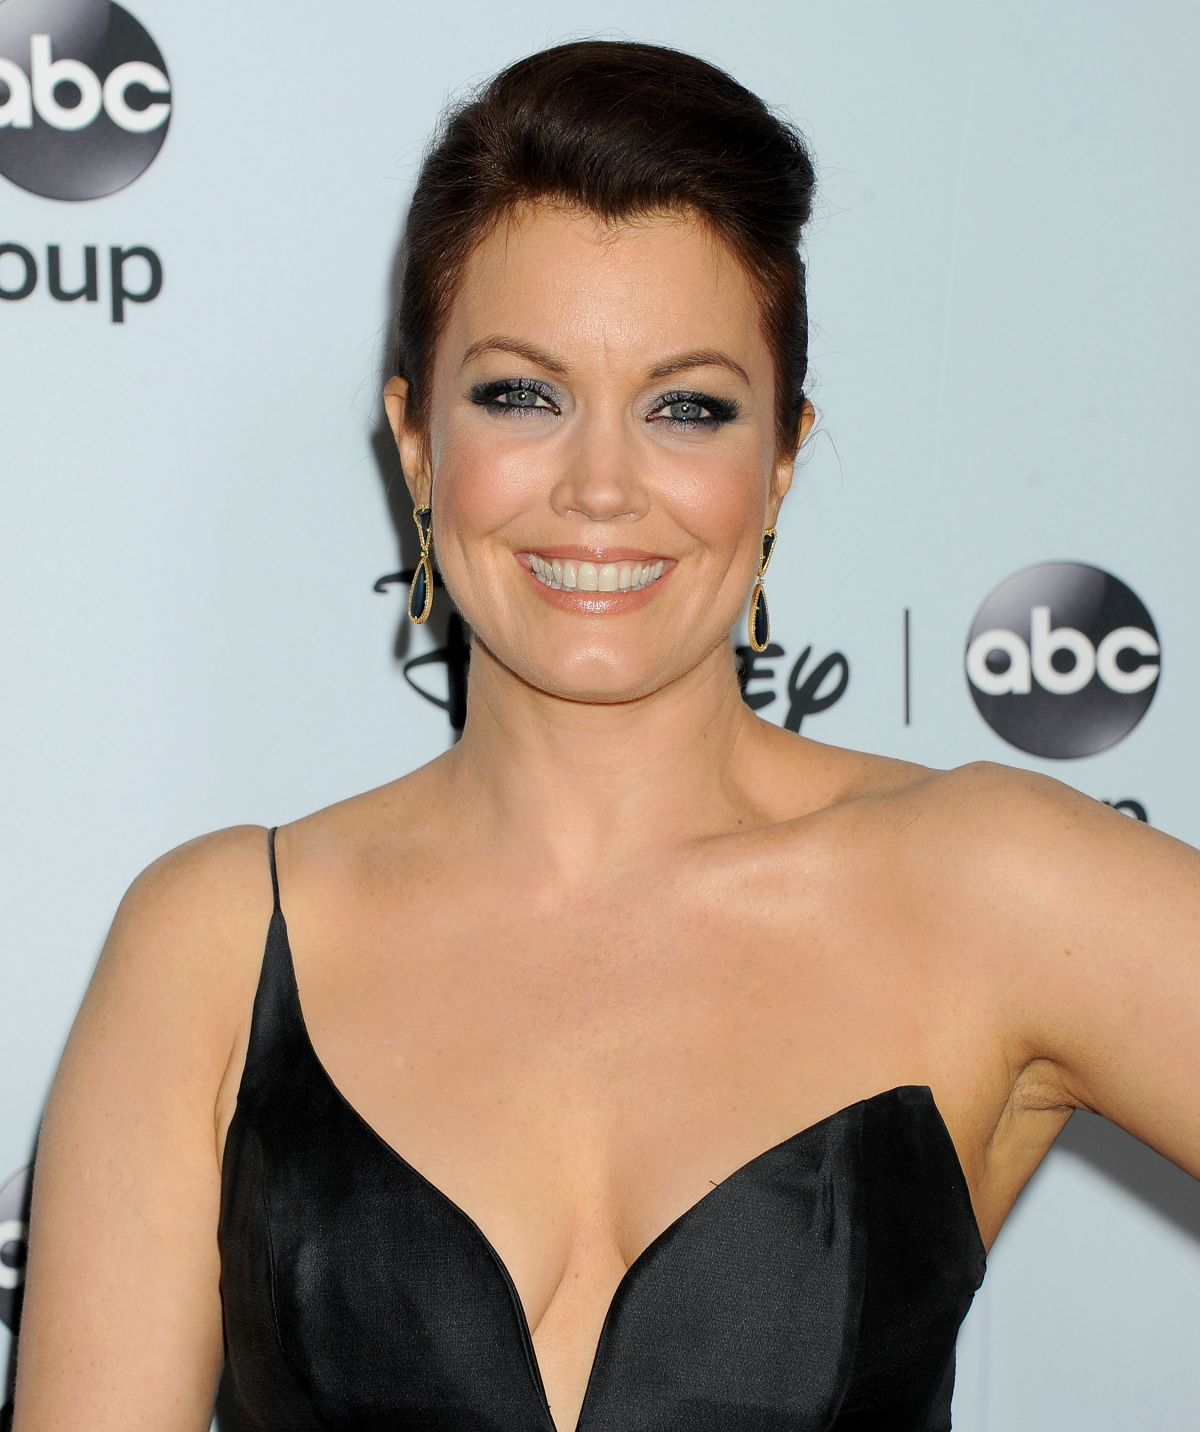 Bikini Bellamy Young nudes (88 photos), Tits, Is a cute, Feet, panties 2015